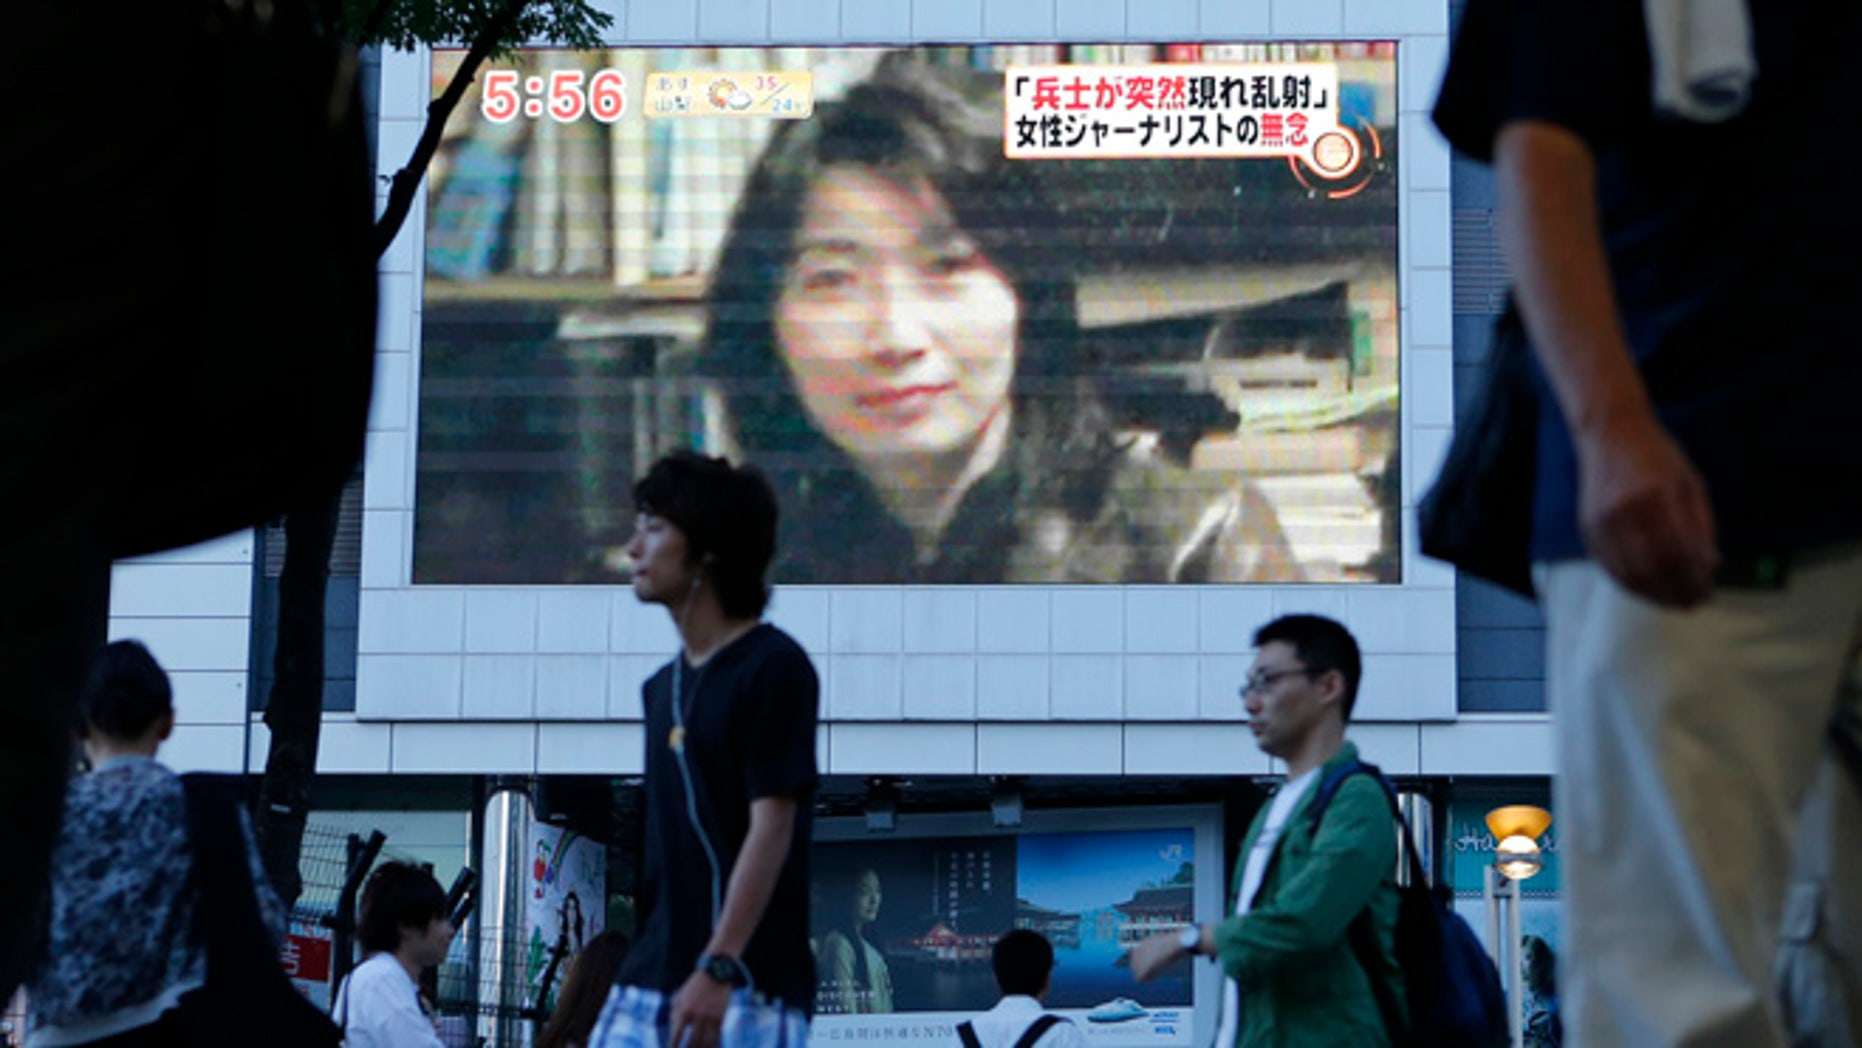 Aug. 21, 2012: An image of Japanese journalist Mika Yamamoto is shown on a large monitor screen in Tokyo during a TV news broadcast reporting her death in Syria.